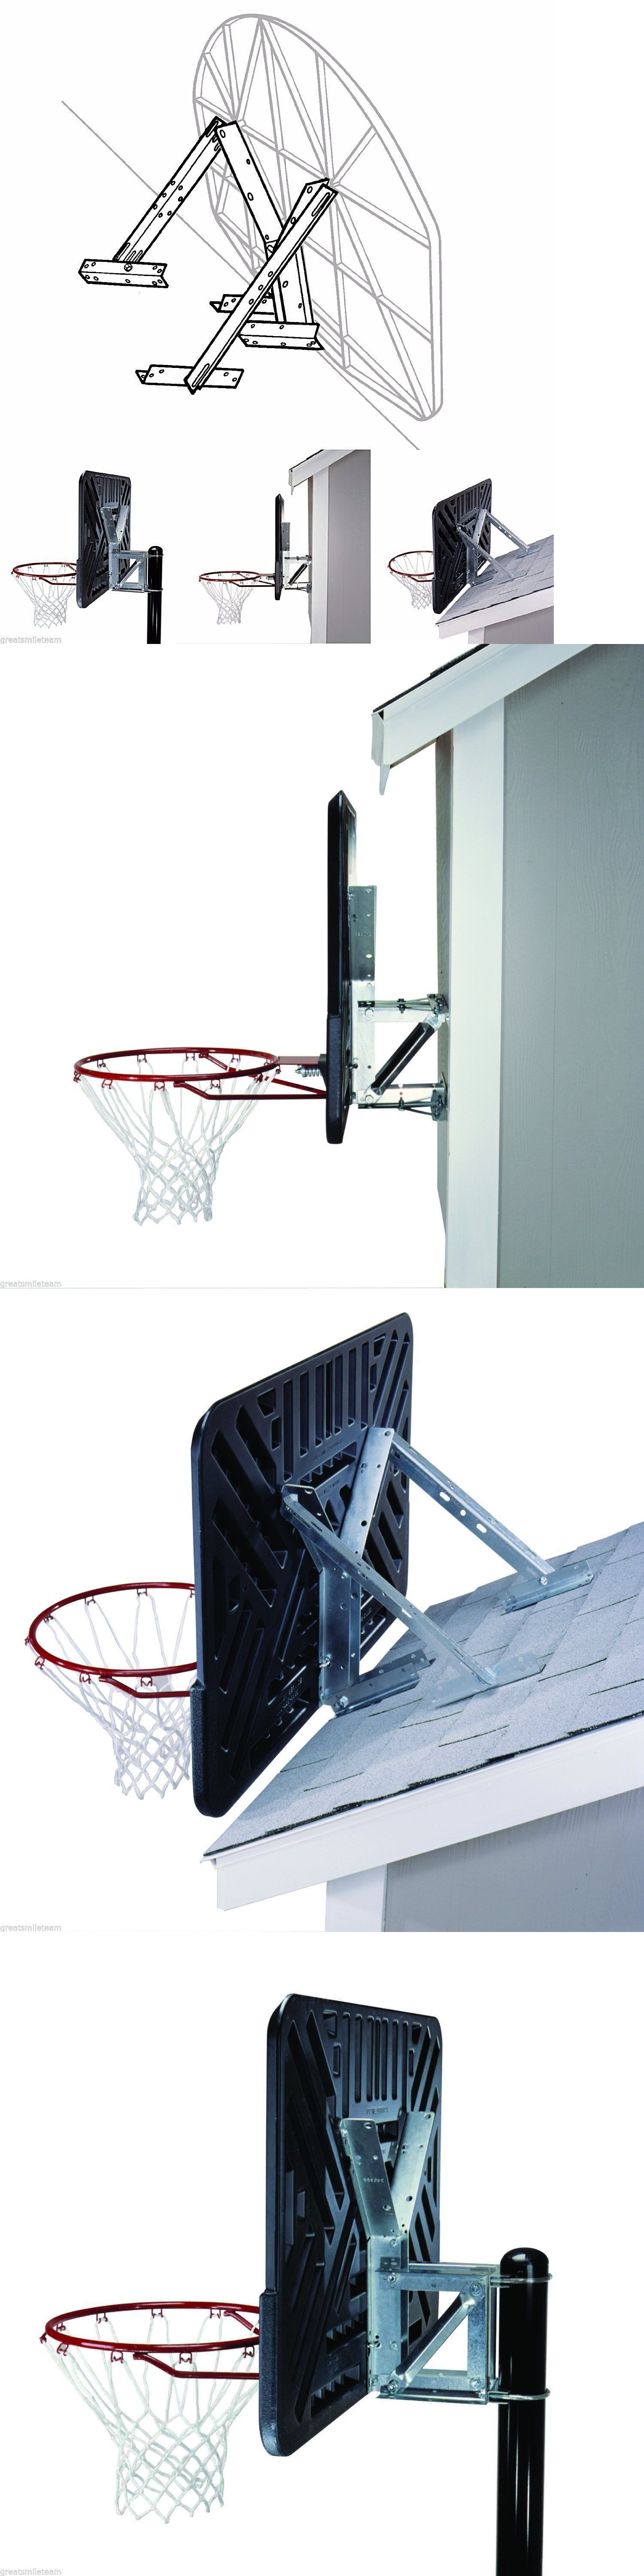 backboard systems 21196 spalding portable basketball hoop system